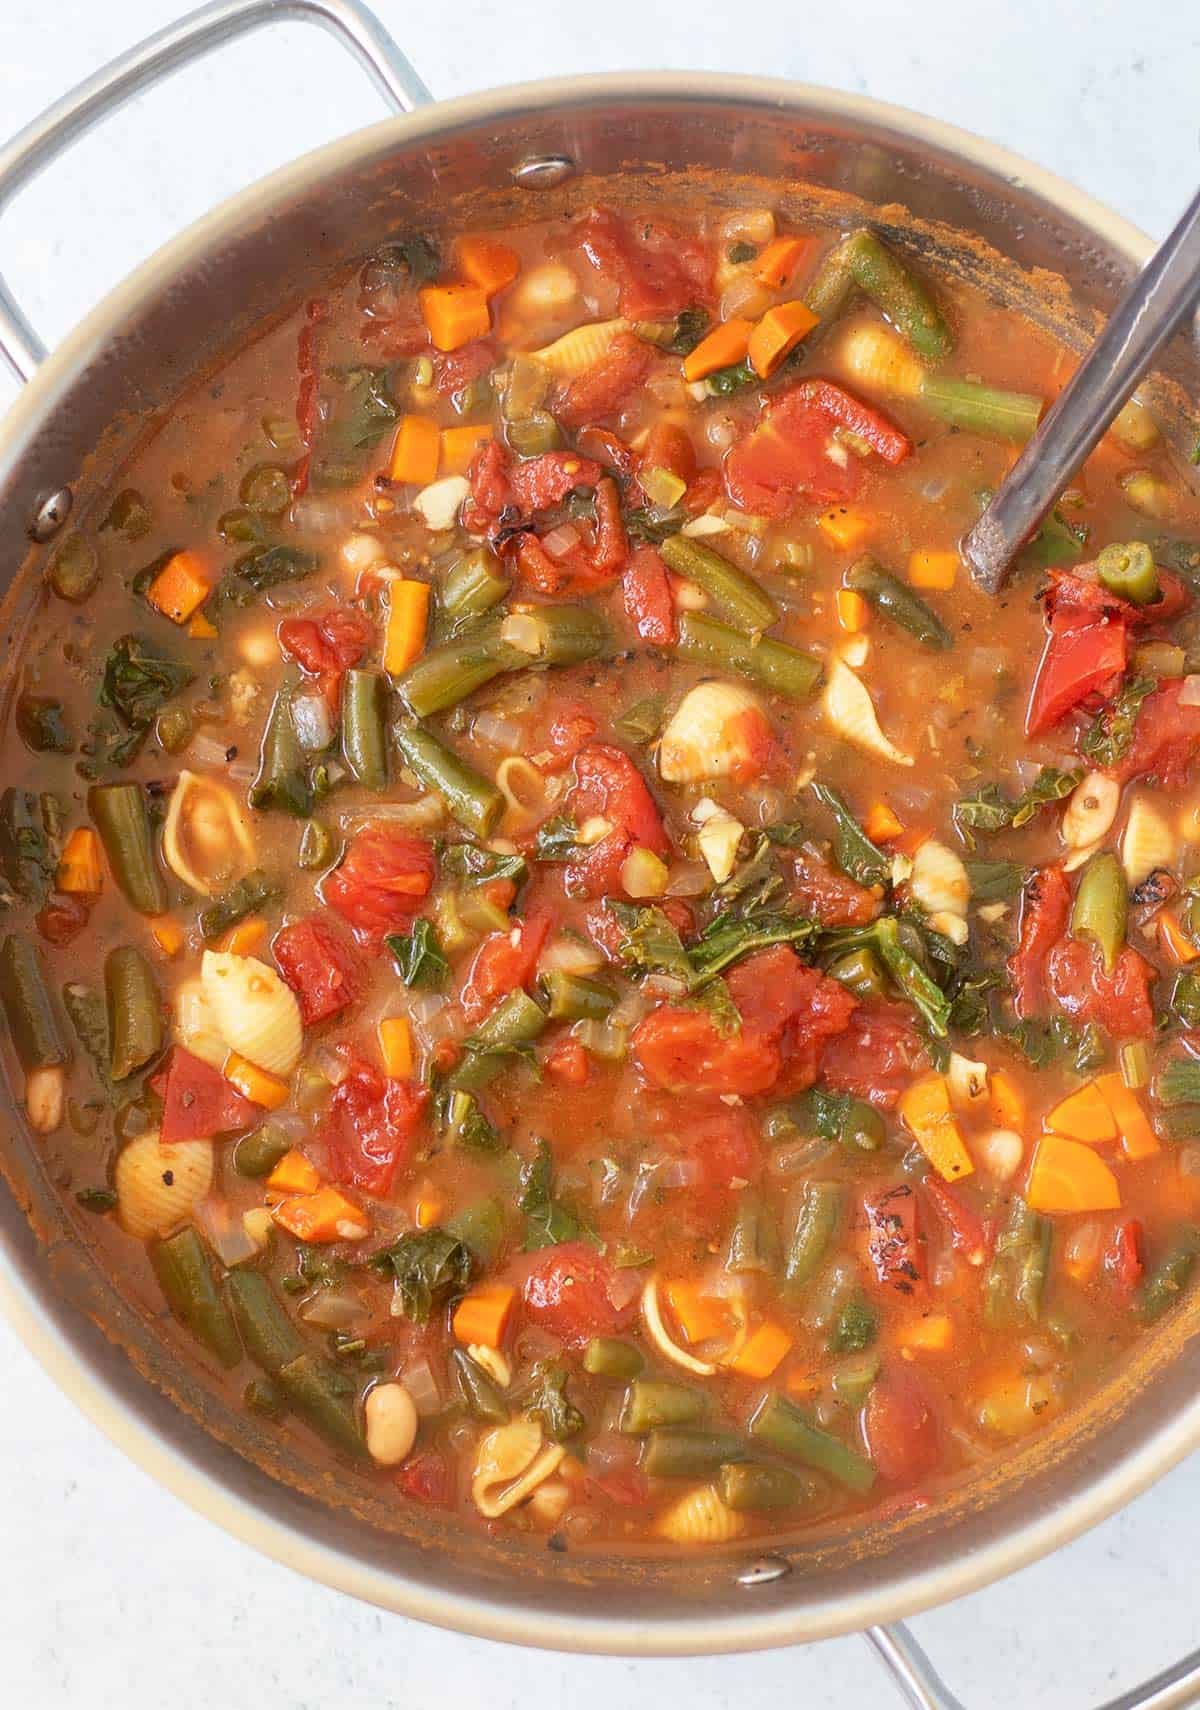 vegetarian minestrone soup in large stainless steel soup pot.